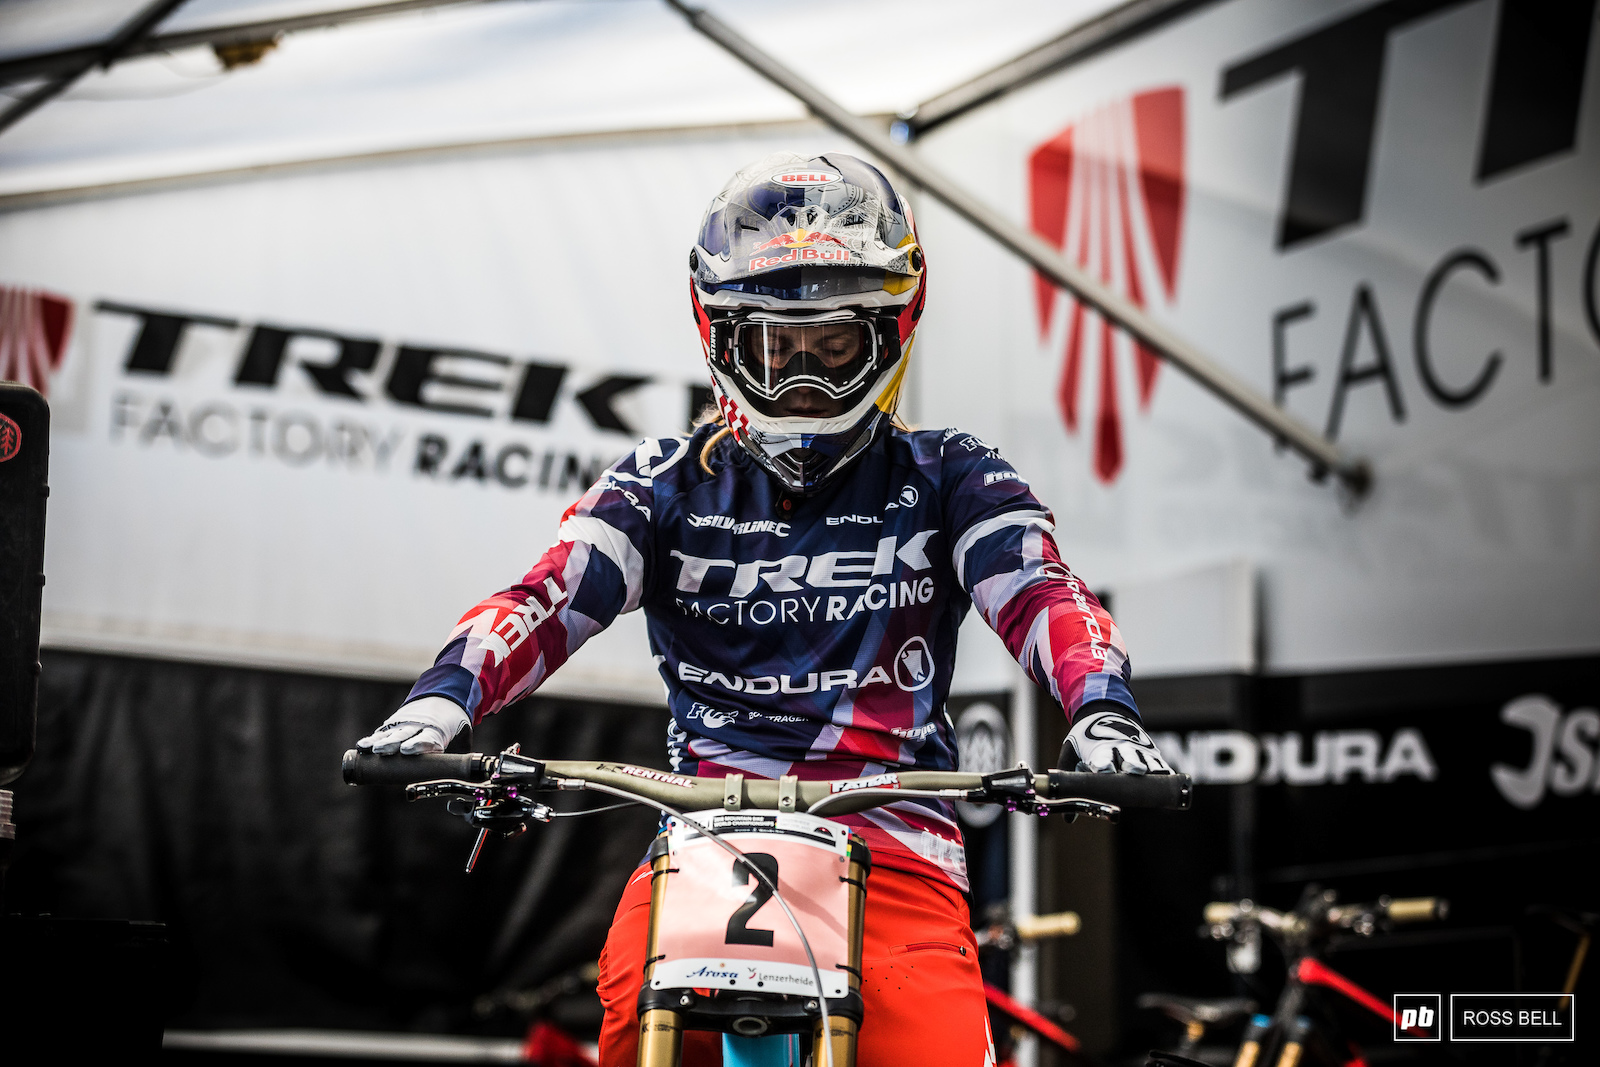 Rachel Atherton making sure her cockpit is exactly to her her liking before getting stuck into practice.